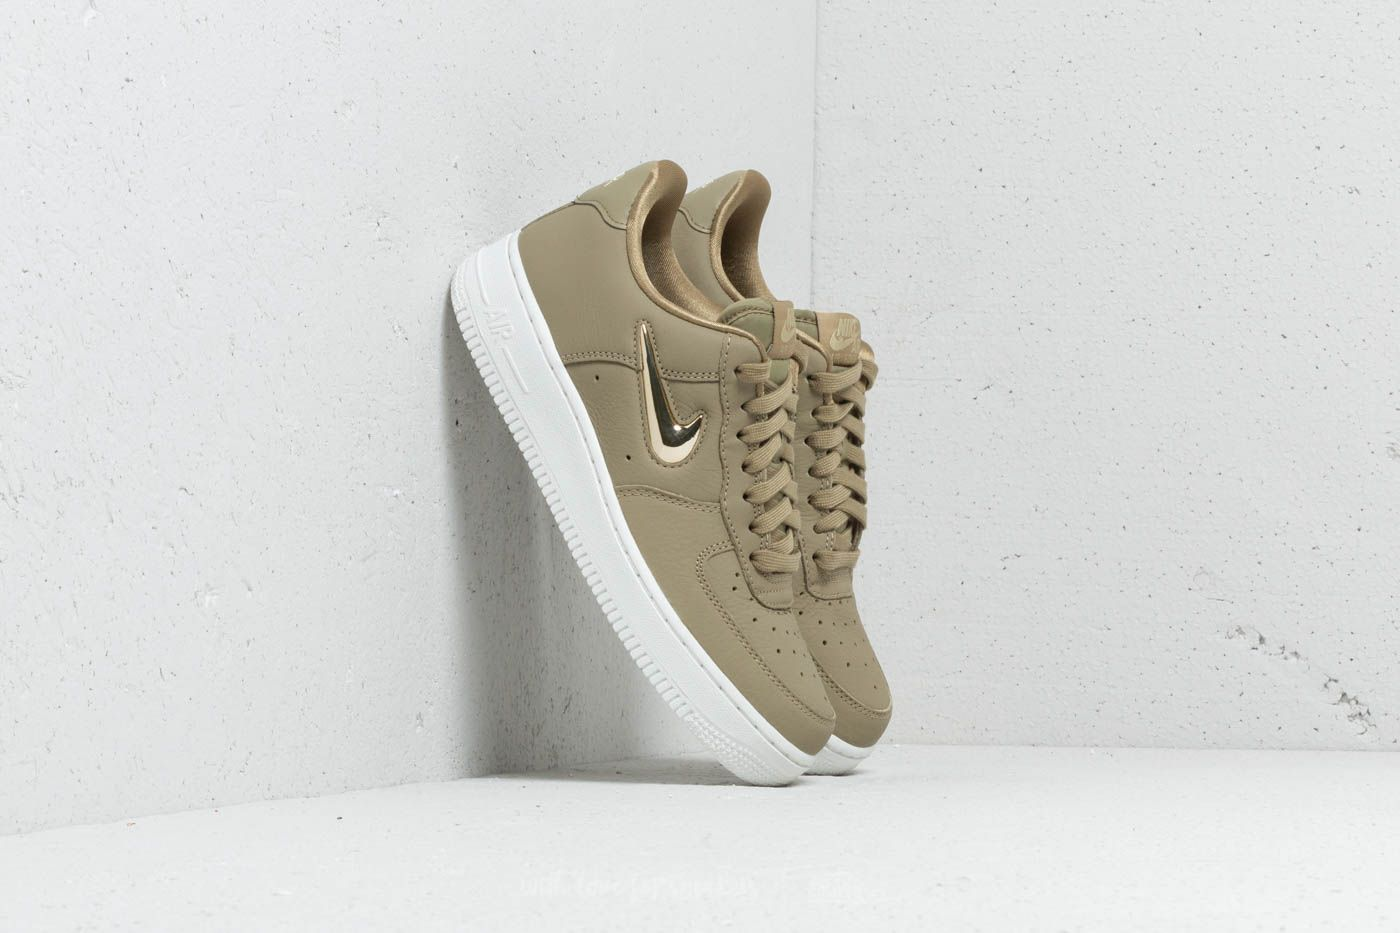 Nike Wmns Air Force 1 '07 Premium LX Neutral Olive Metallic